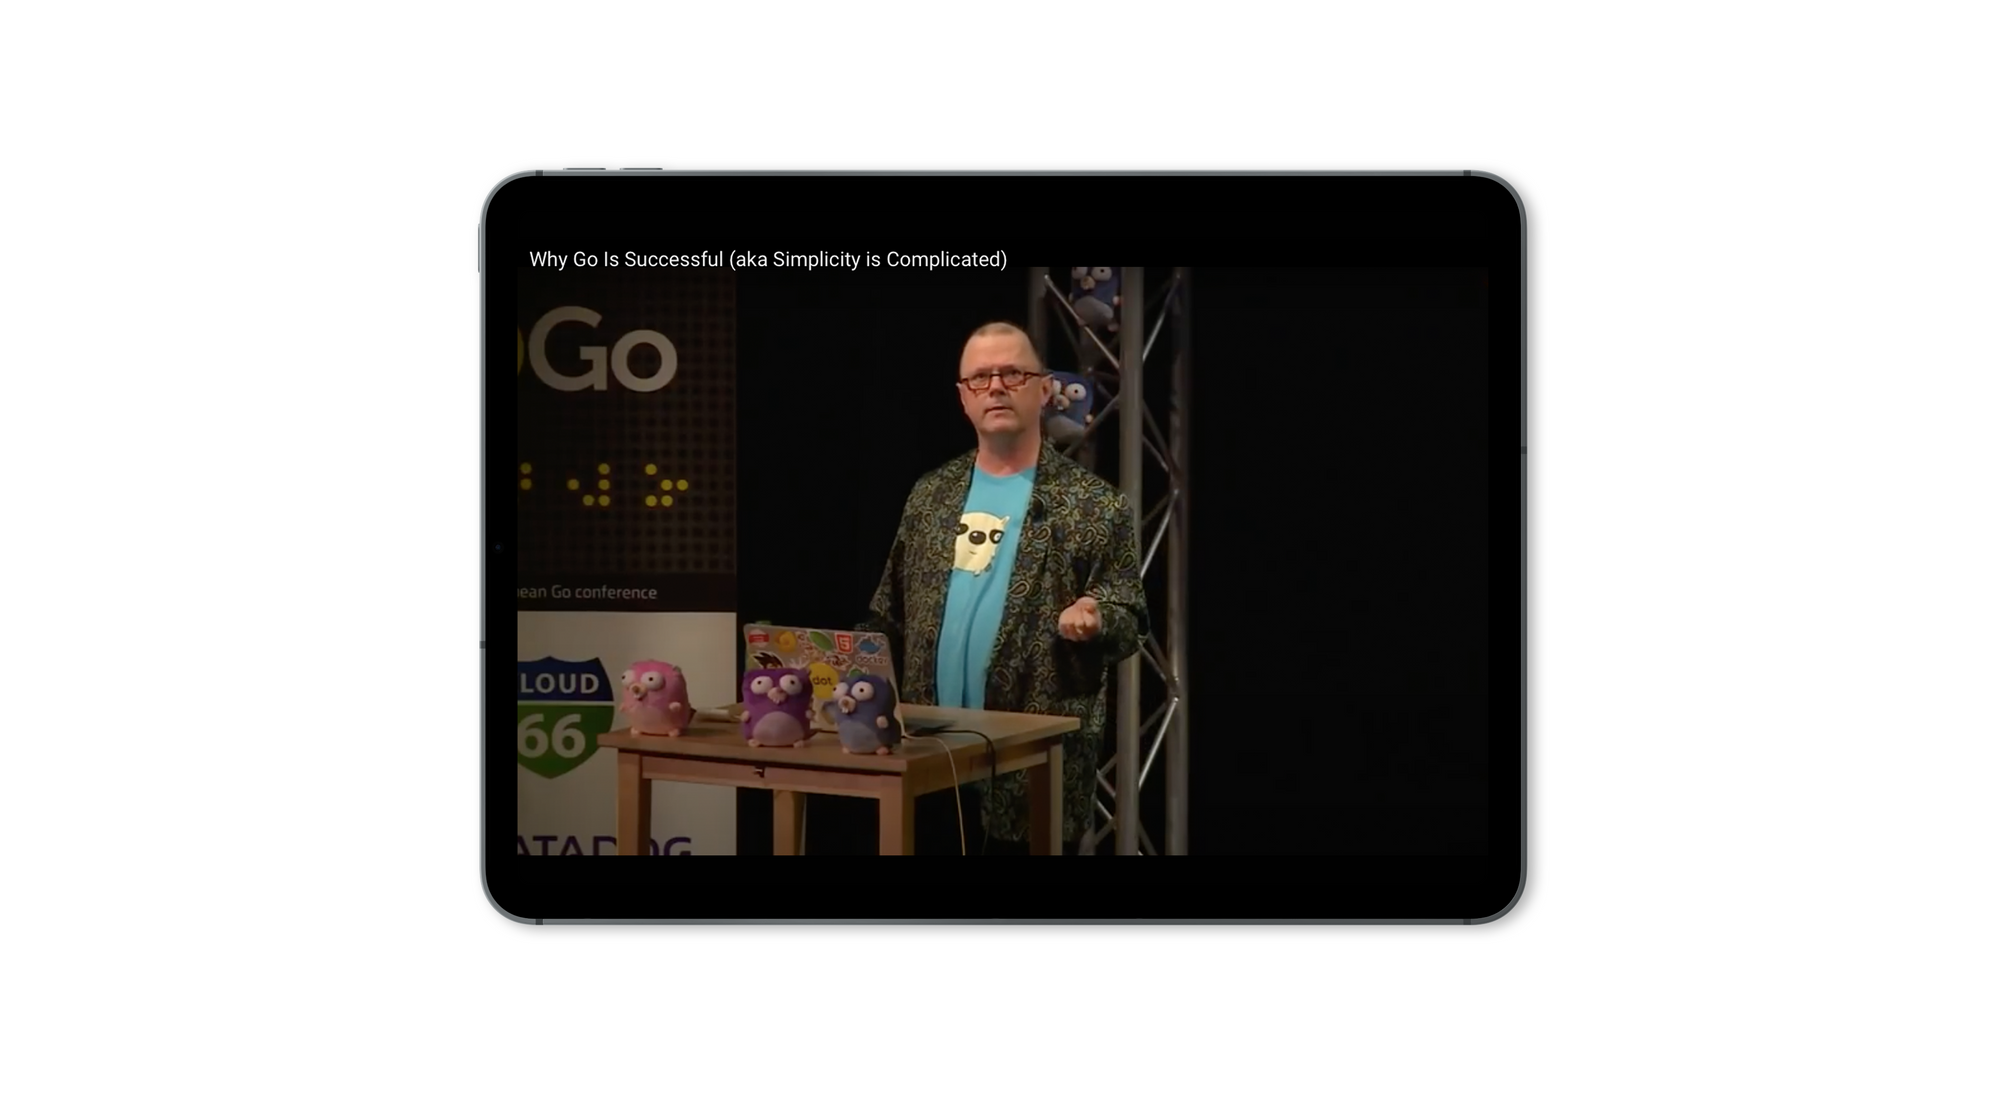 Rob Pike - Why Go is Successful (aka Simplicity is Complicated)